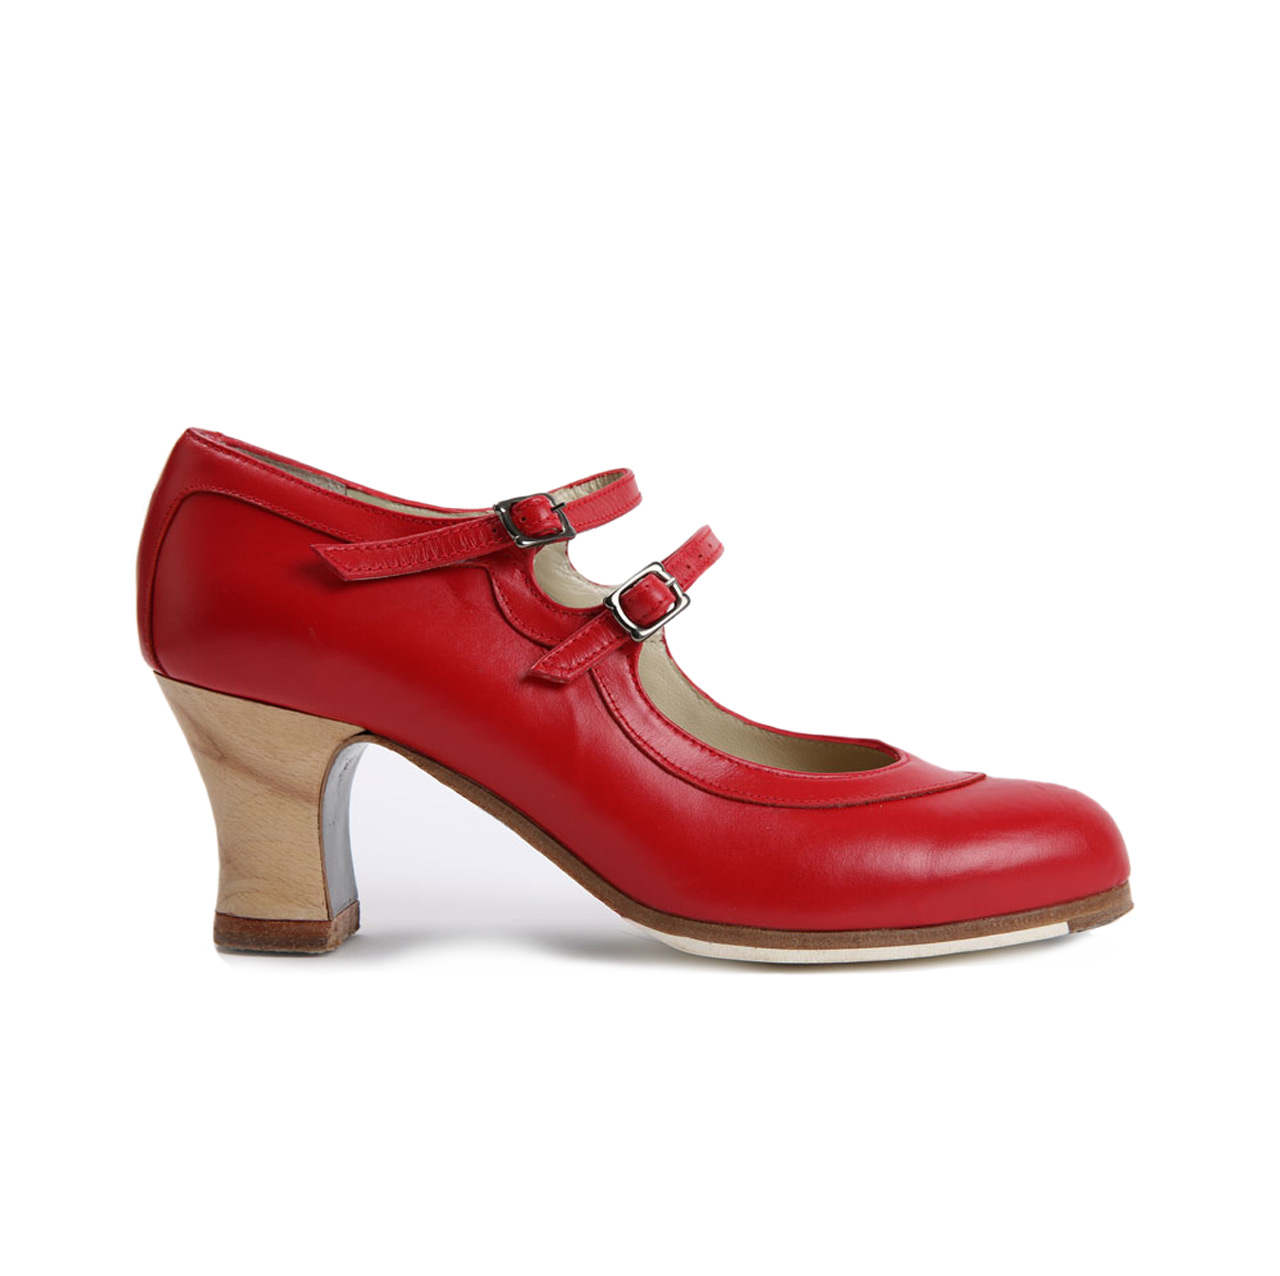 Flamenco dance Shoe Dos Correas Red Leather